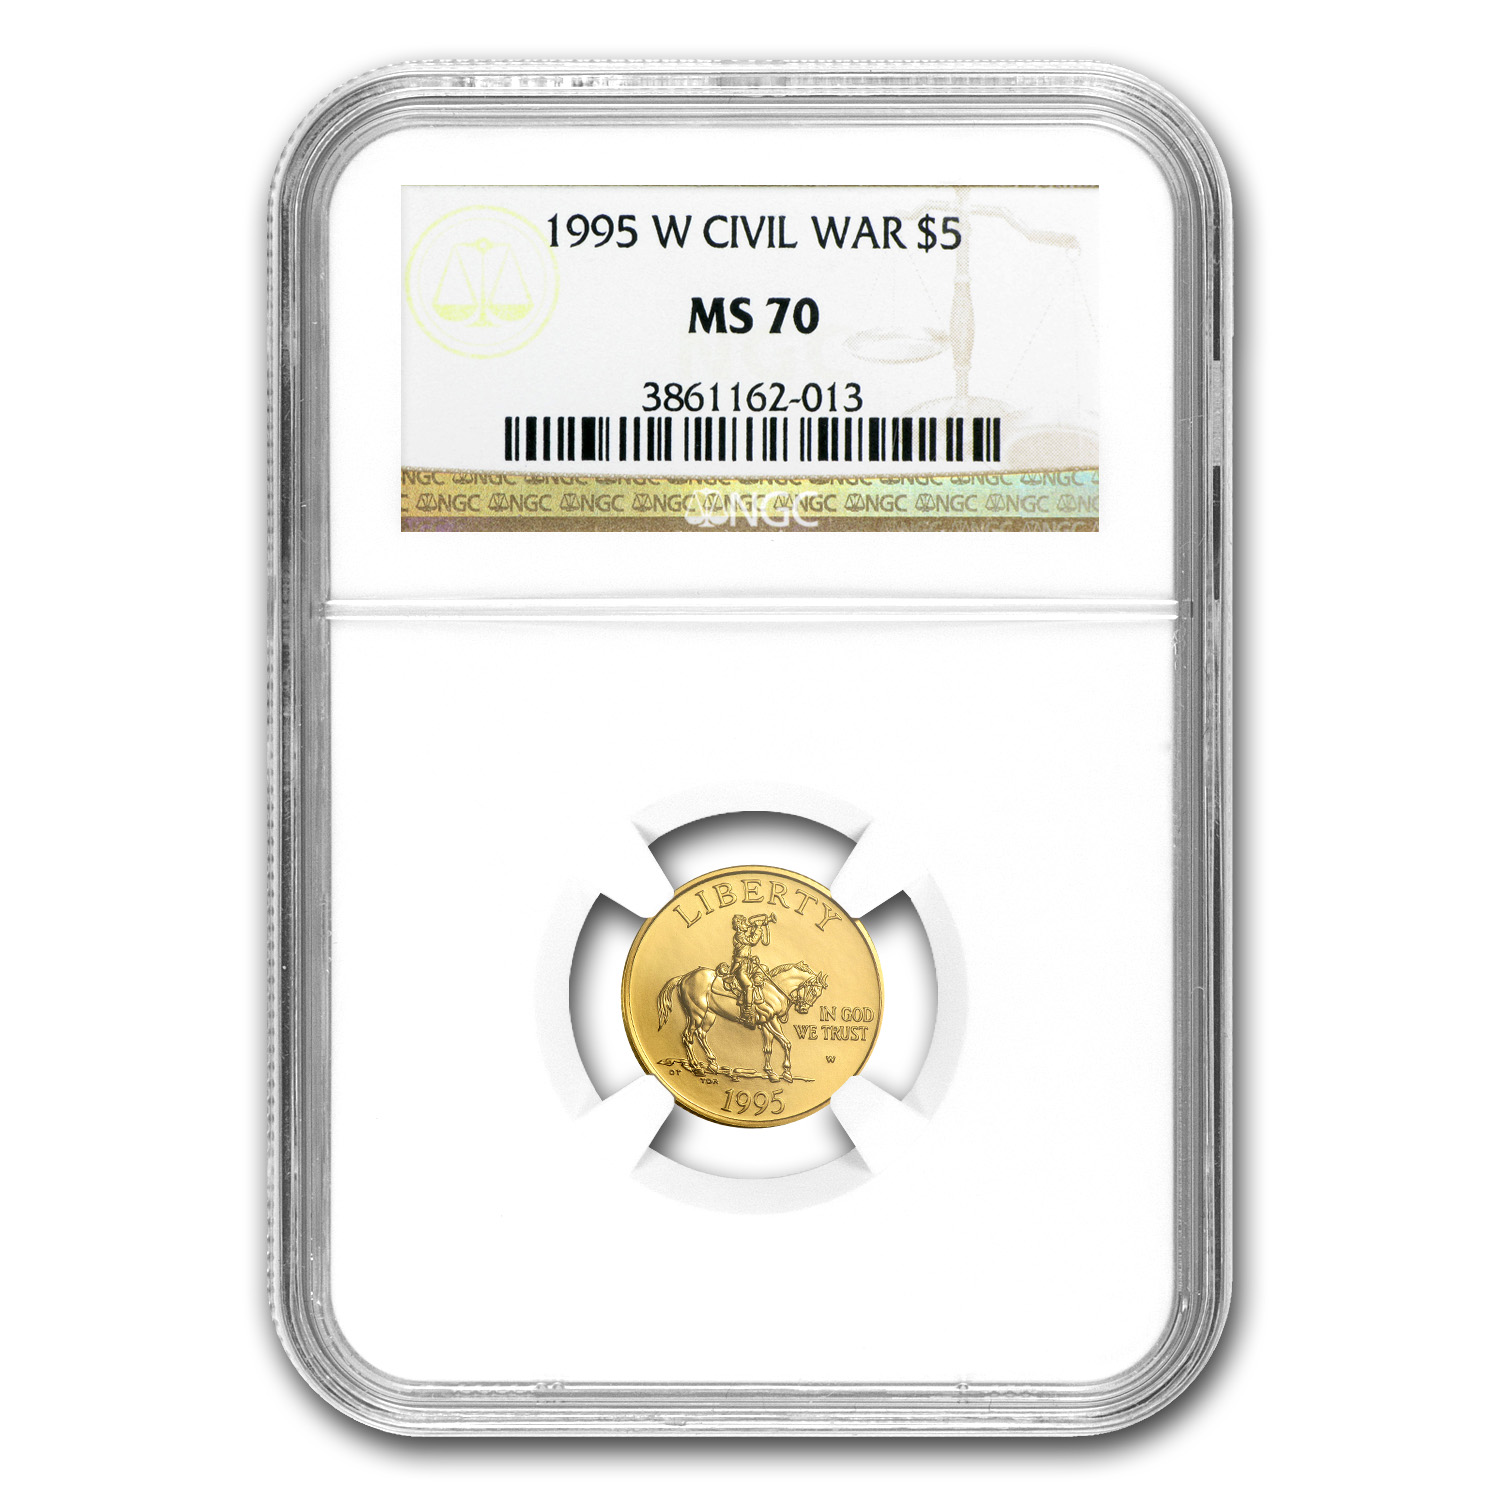 1995-W Civil War - $5 Gold Commemorative - MS-70 NGC